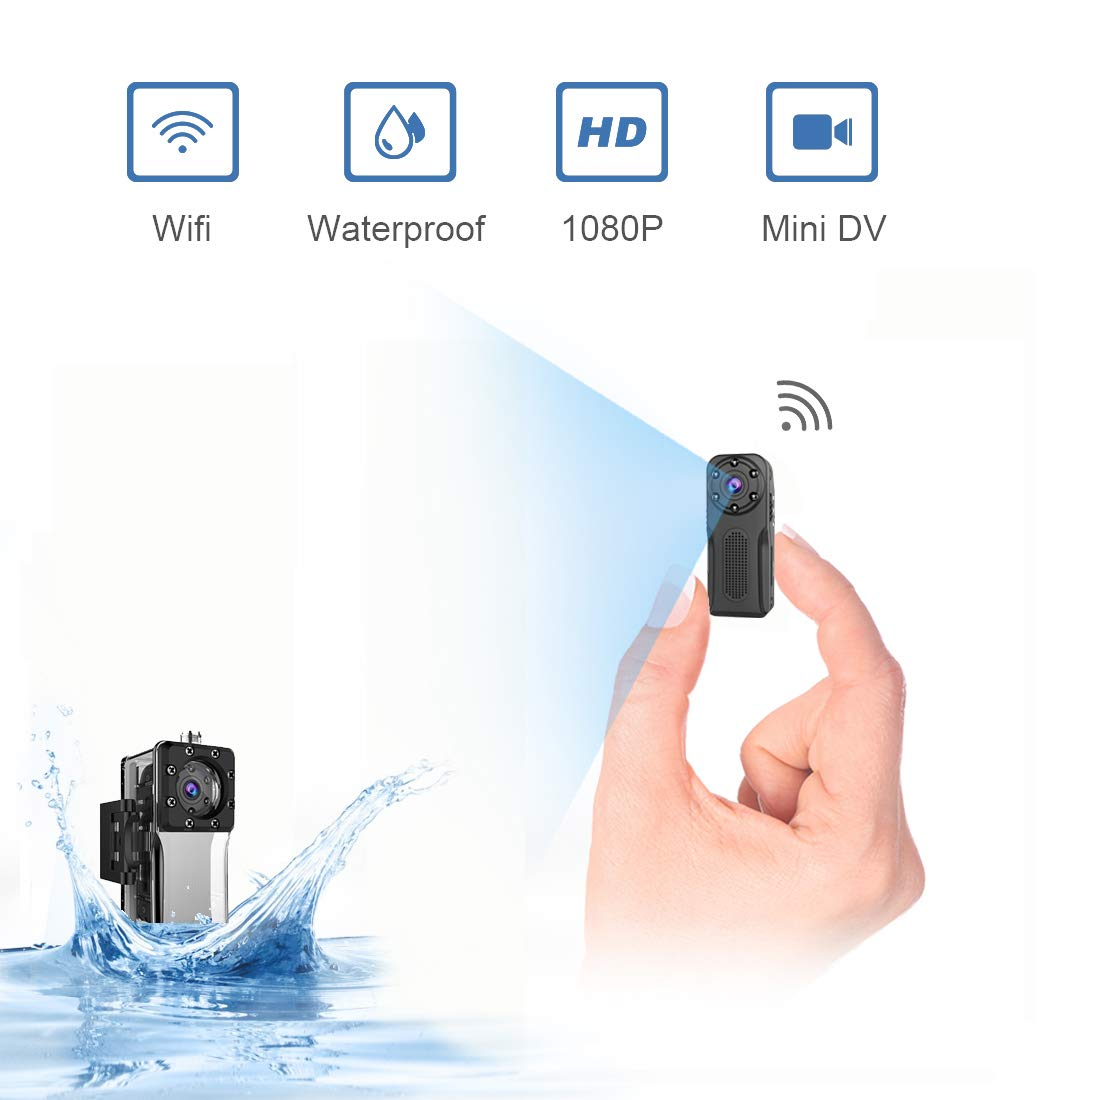 Waterproof Surveillance Camera Wireless Hidden ZZCP WiFi Full HD 1080P Portable Mini Nanny Cam with Night Vision and Motion Detection